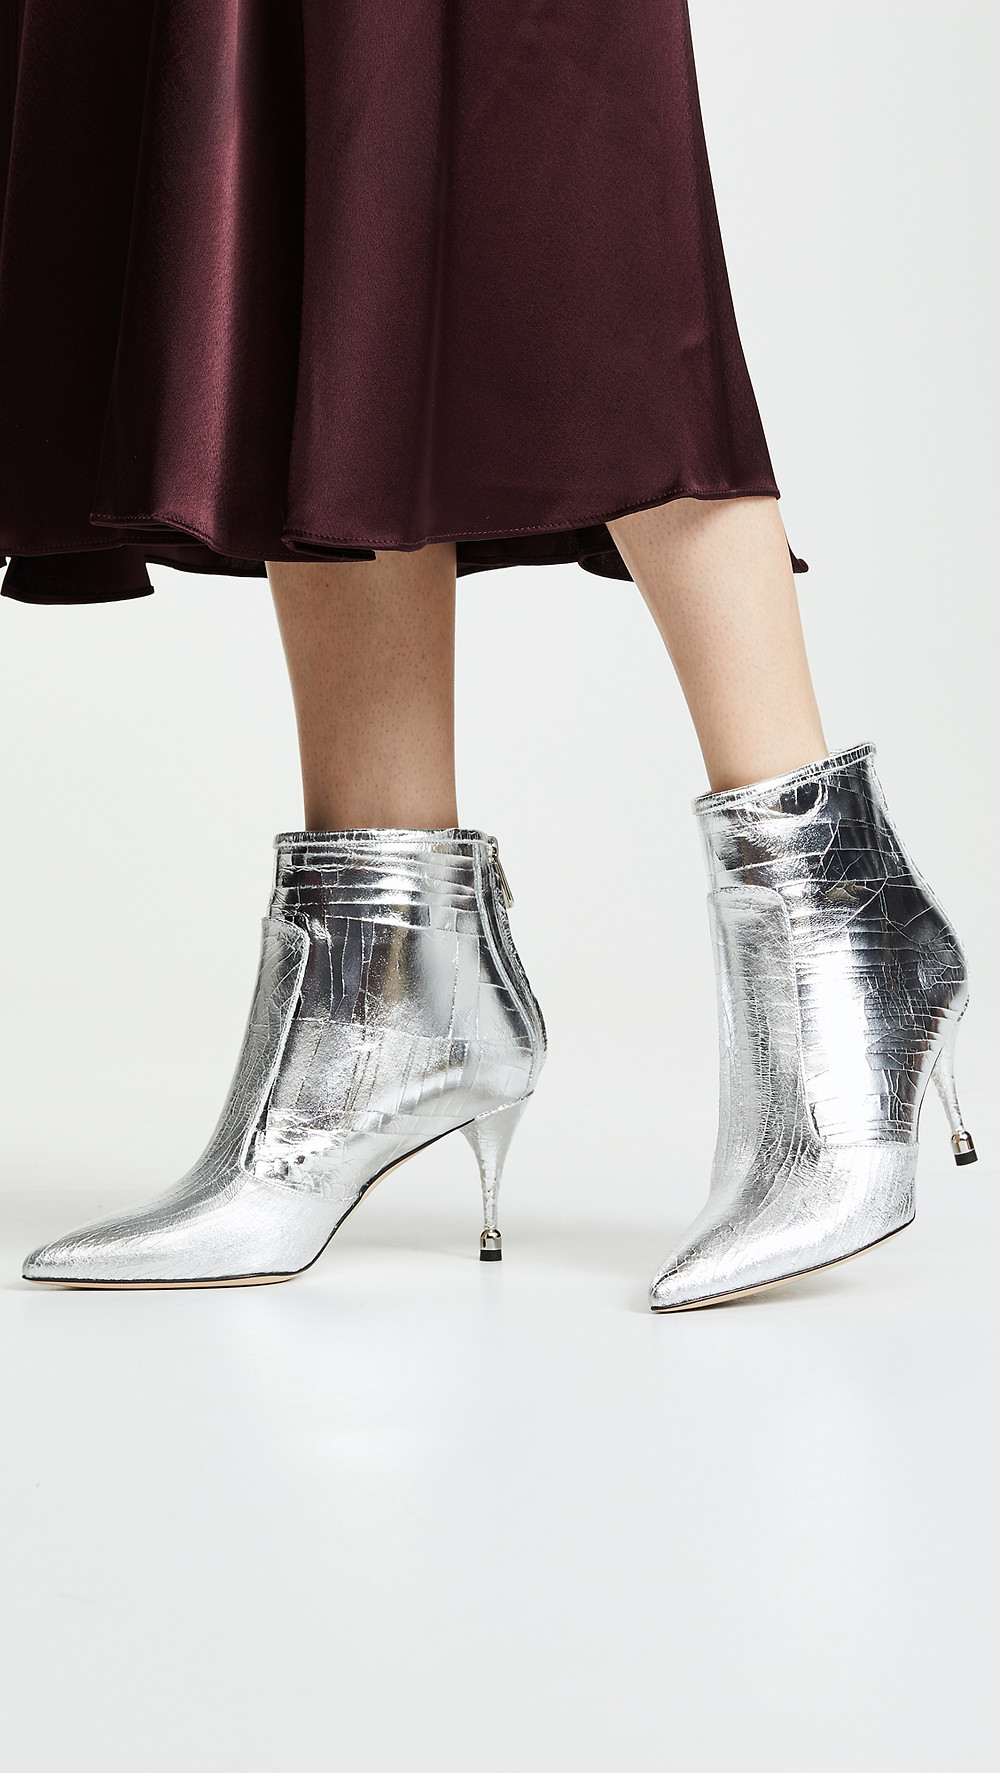 Paul Andrew Citra 75mm Booties $995